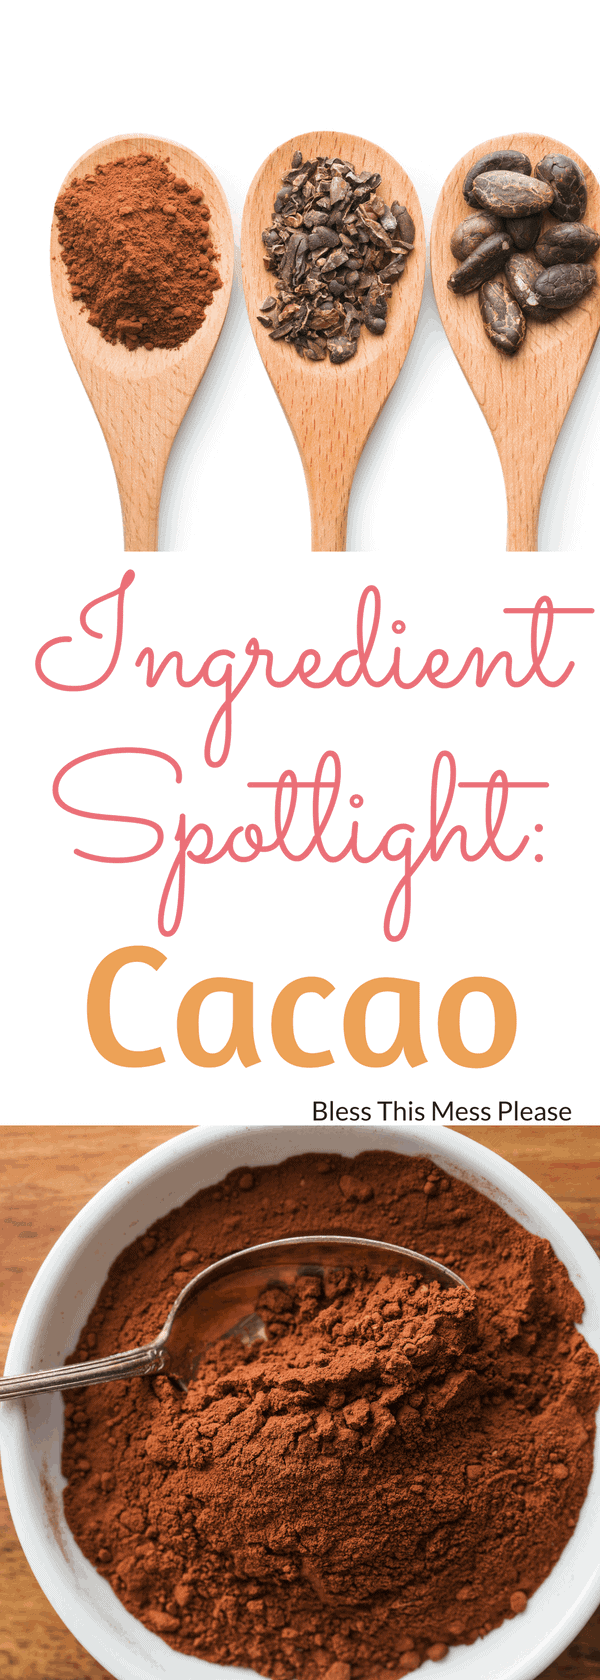 Ingredient Spotlight- Cacao